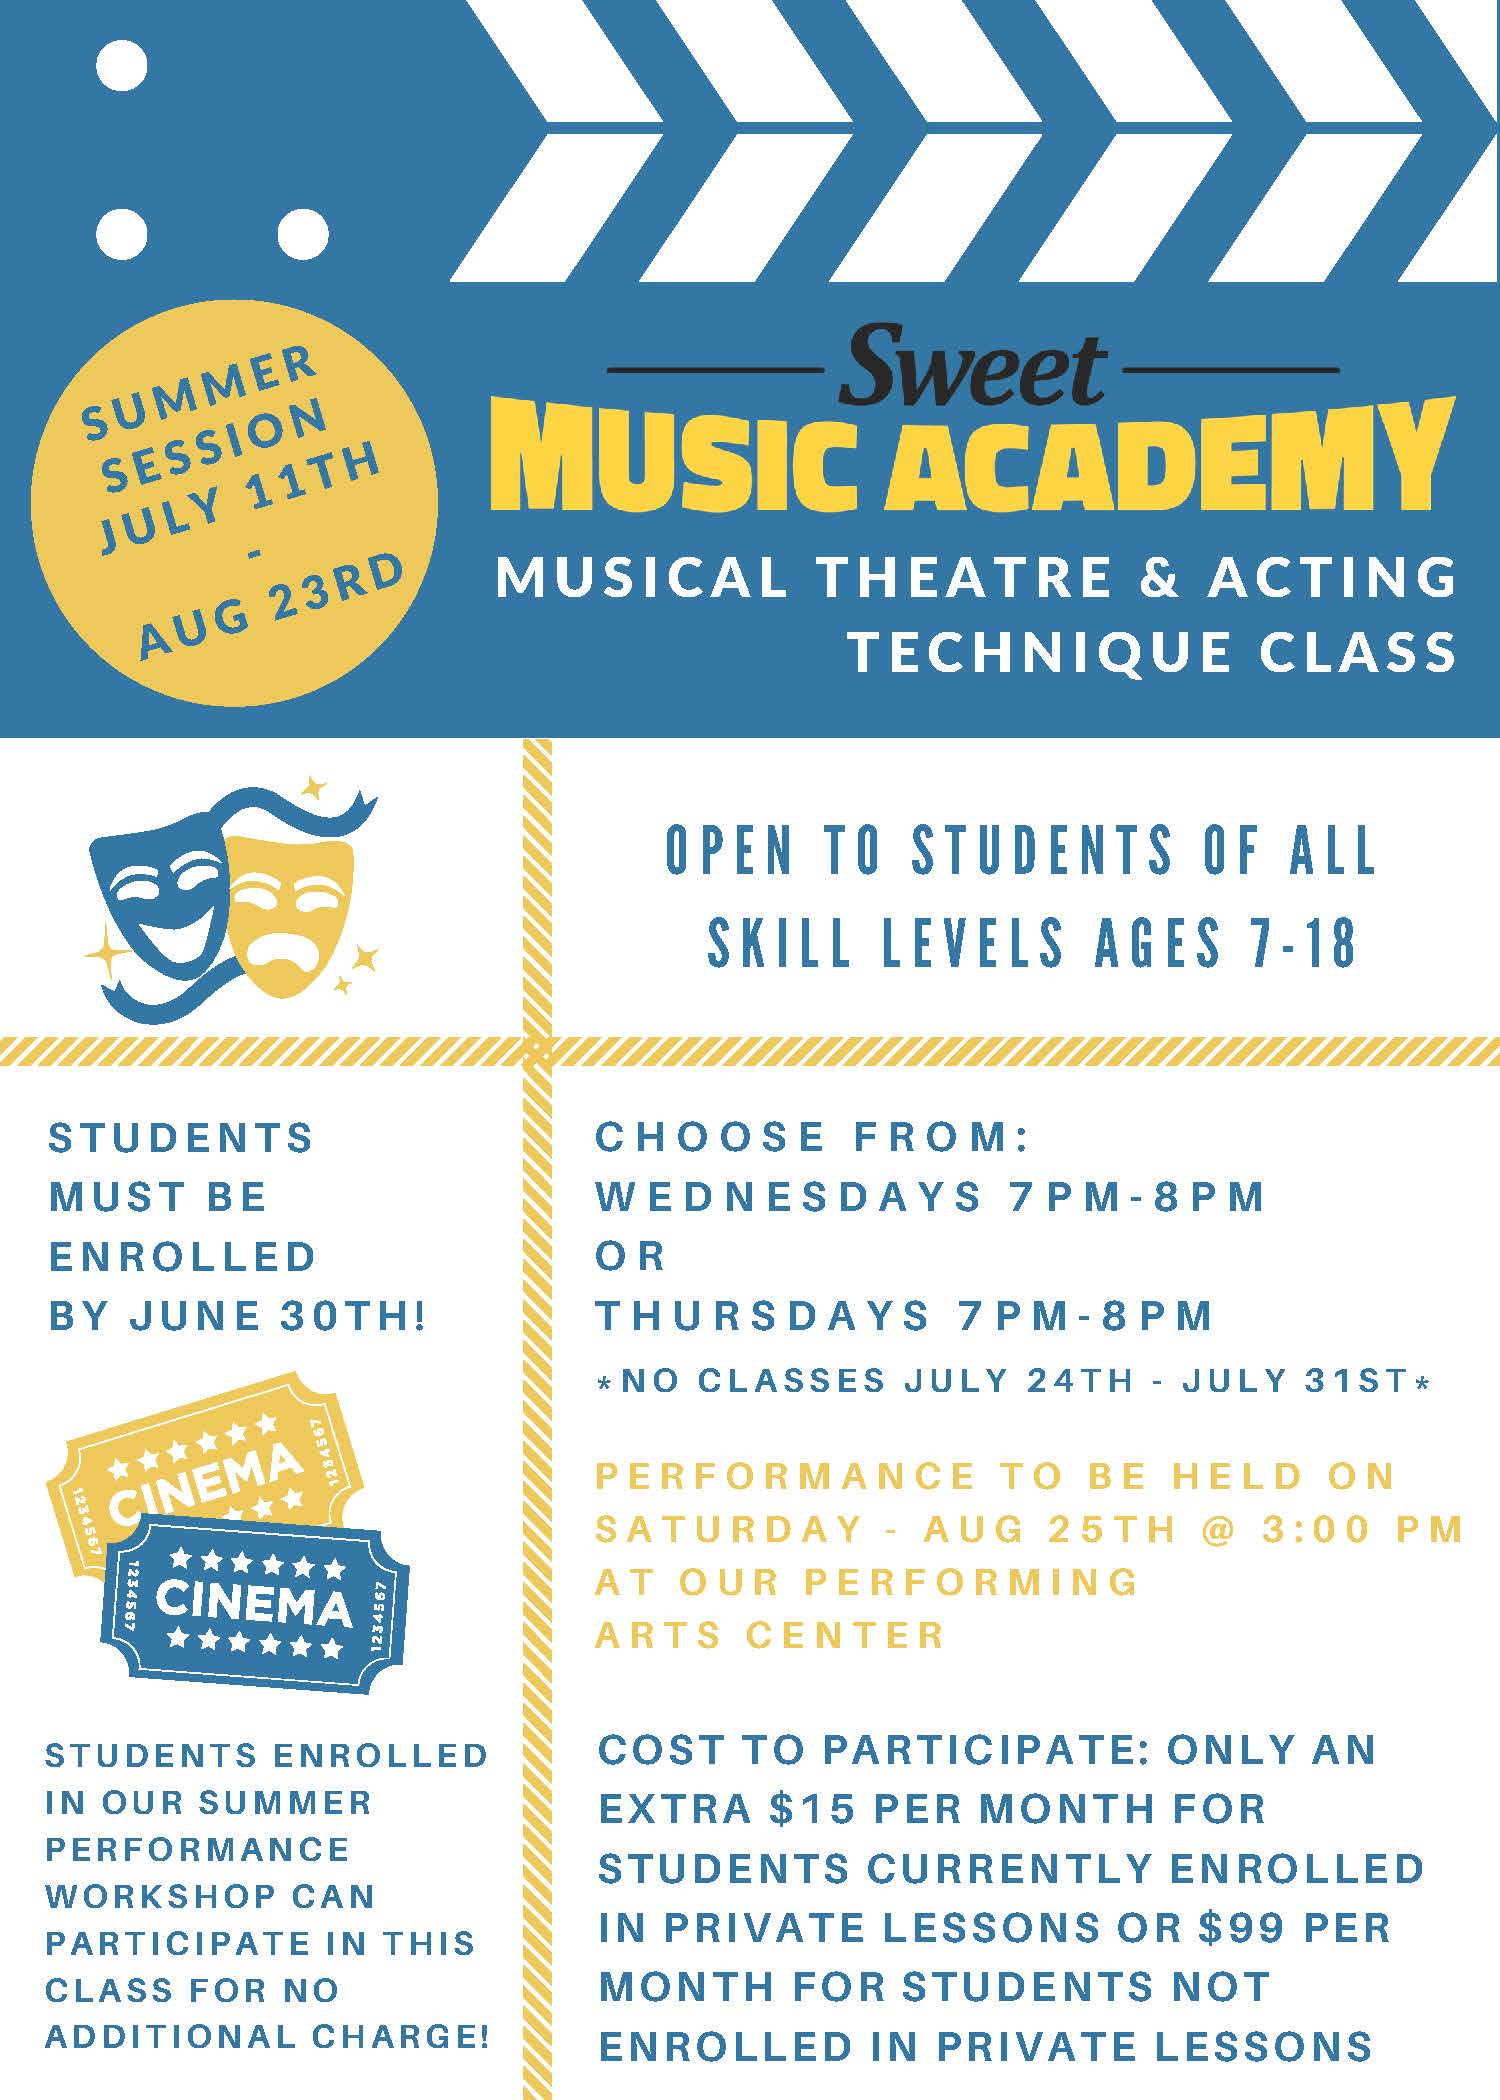 musical-theatre-acting-technique-class-summer-2018